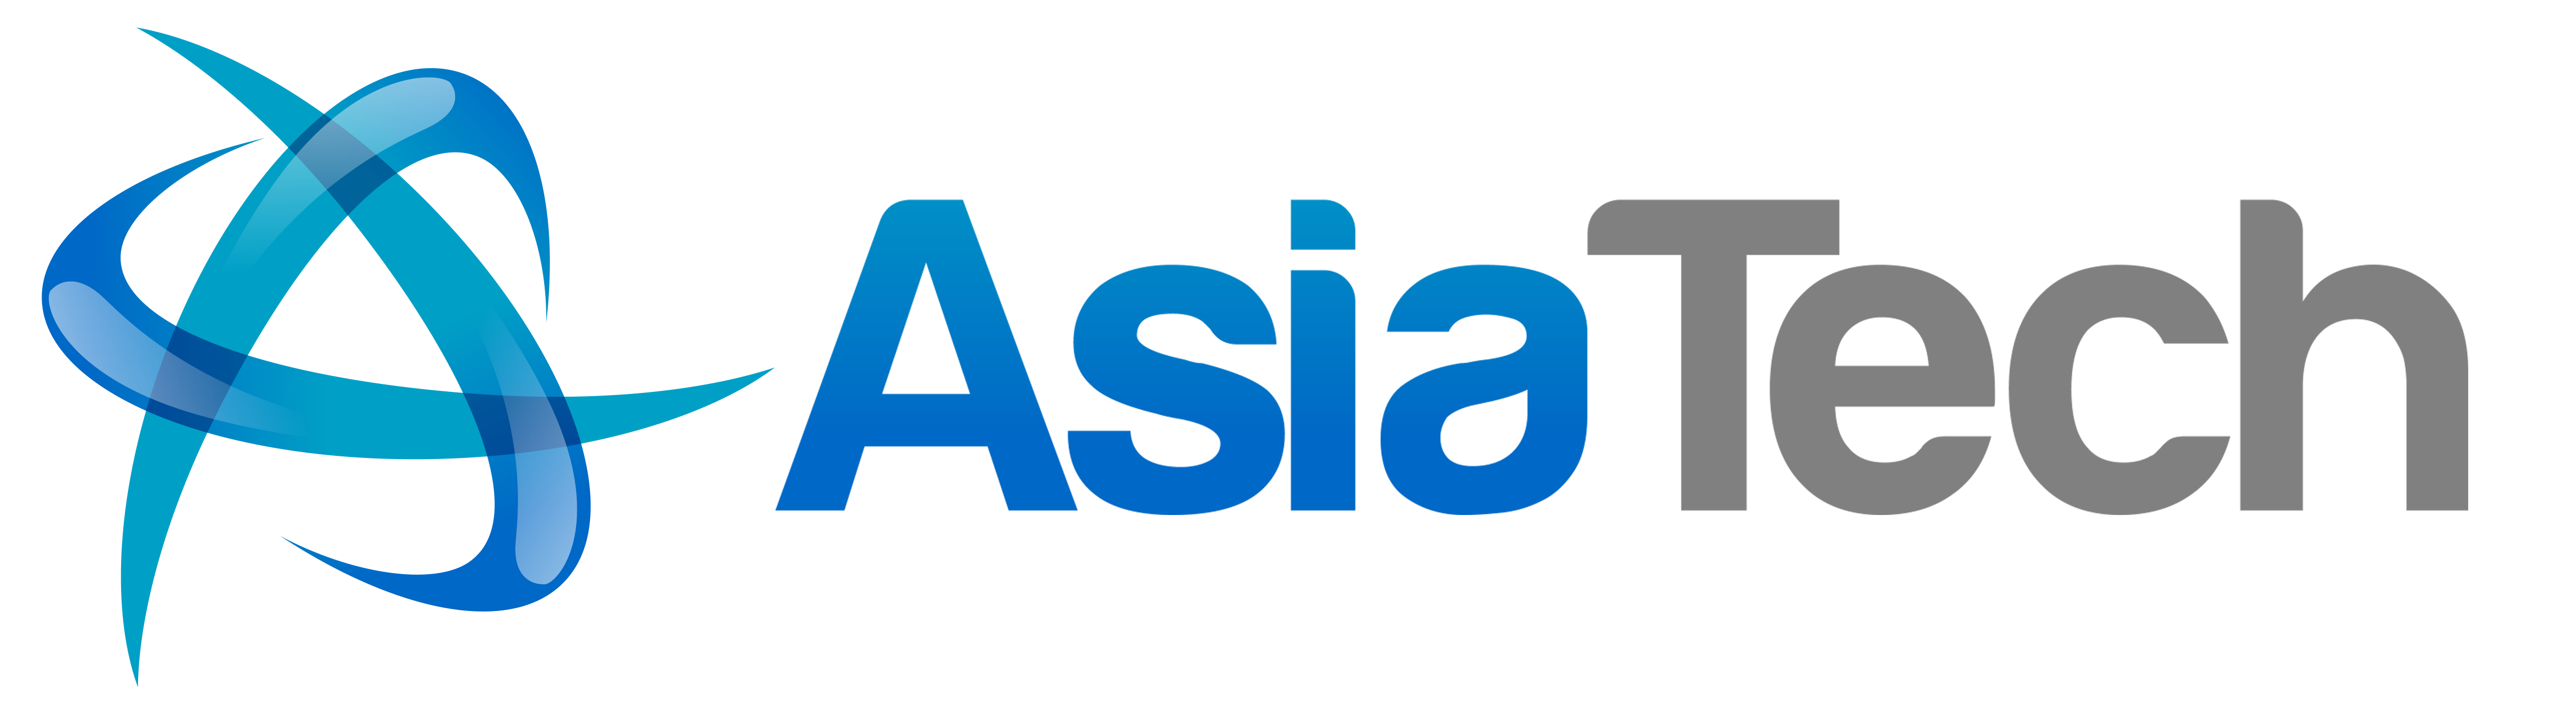 AsiaTech Inc